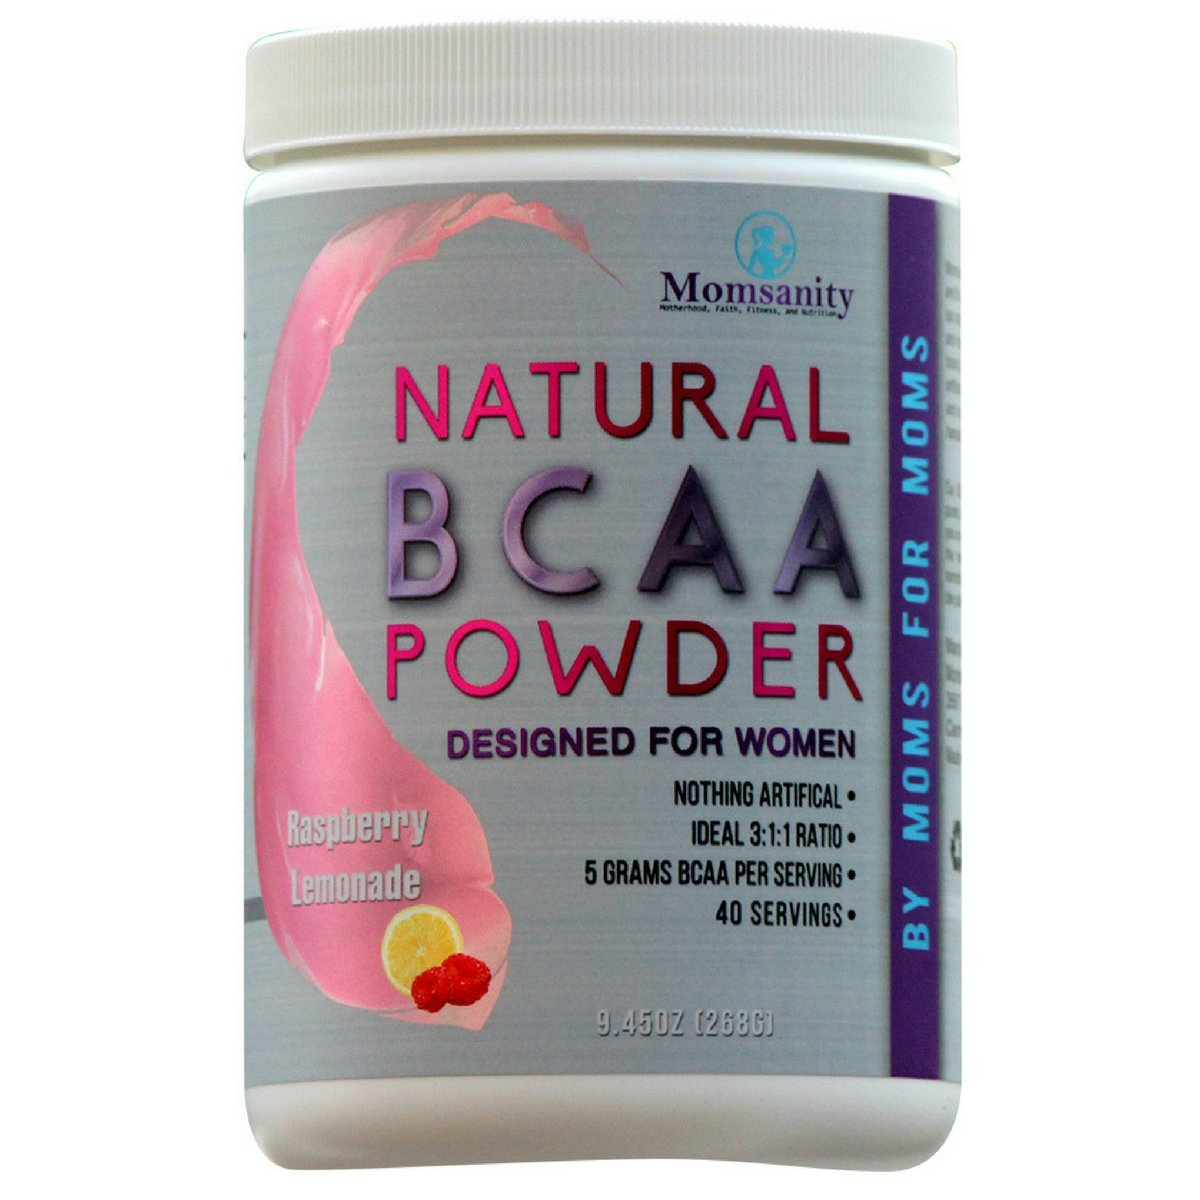 Natural BCAA Powder. Great Tasting Raspberry-Lemonade Flavor. 40 Servings. Sweetened with Stevia, Erythritol, and Monk Fruit. Made by Women for Women.